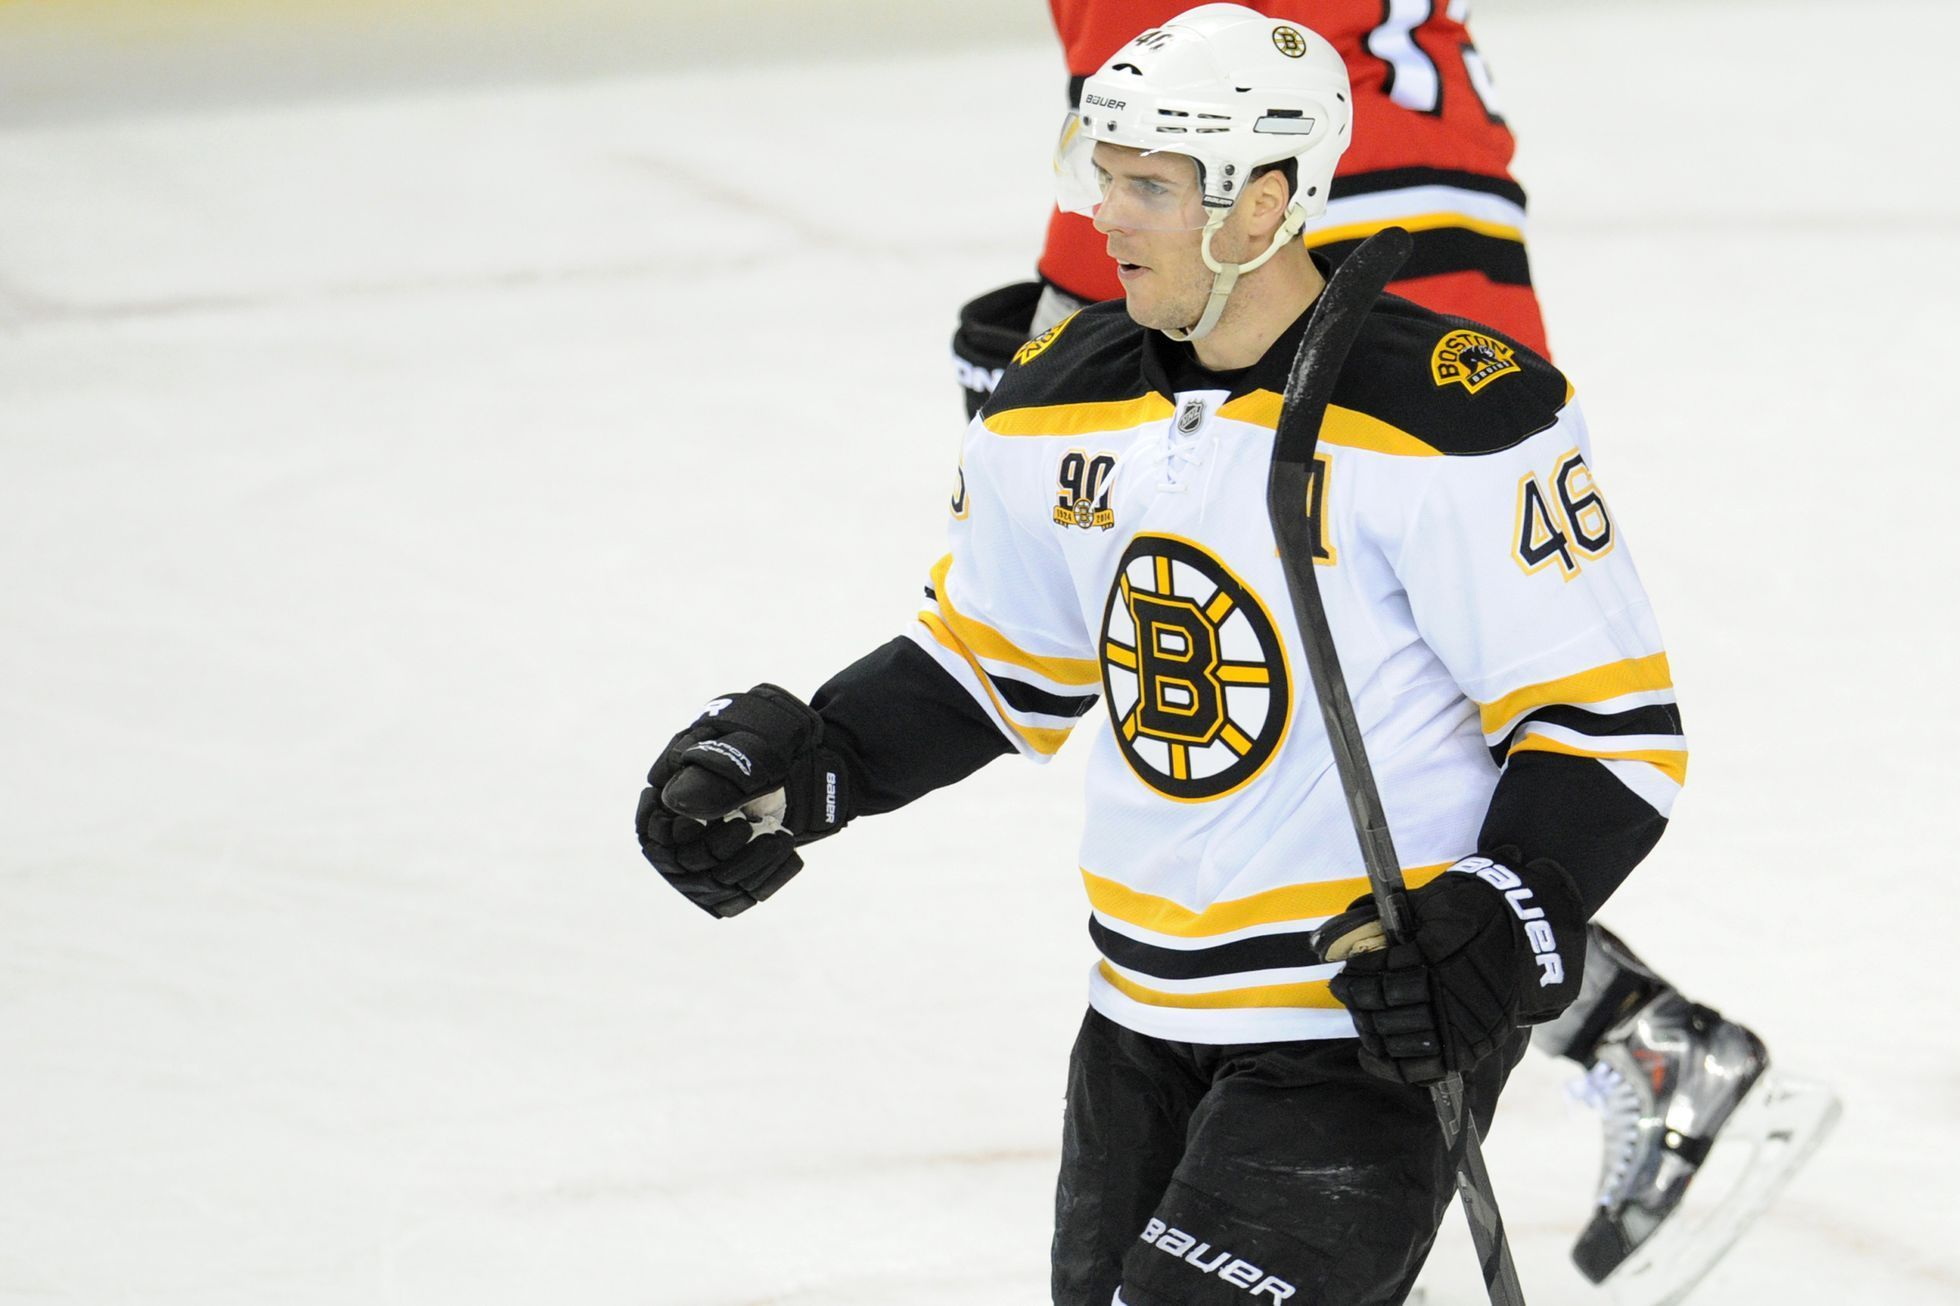 NHL: Boston Bruins proti Calgary Flames (David Krejčí)